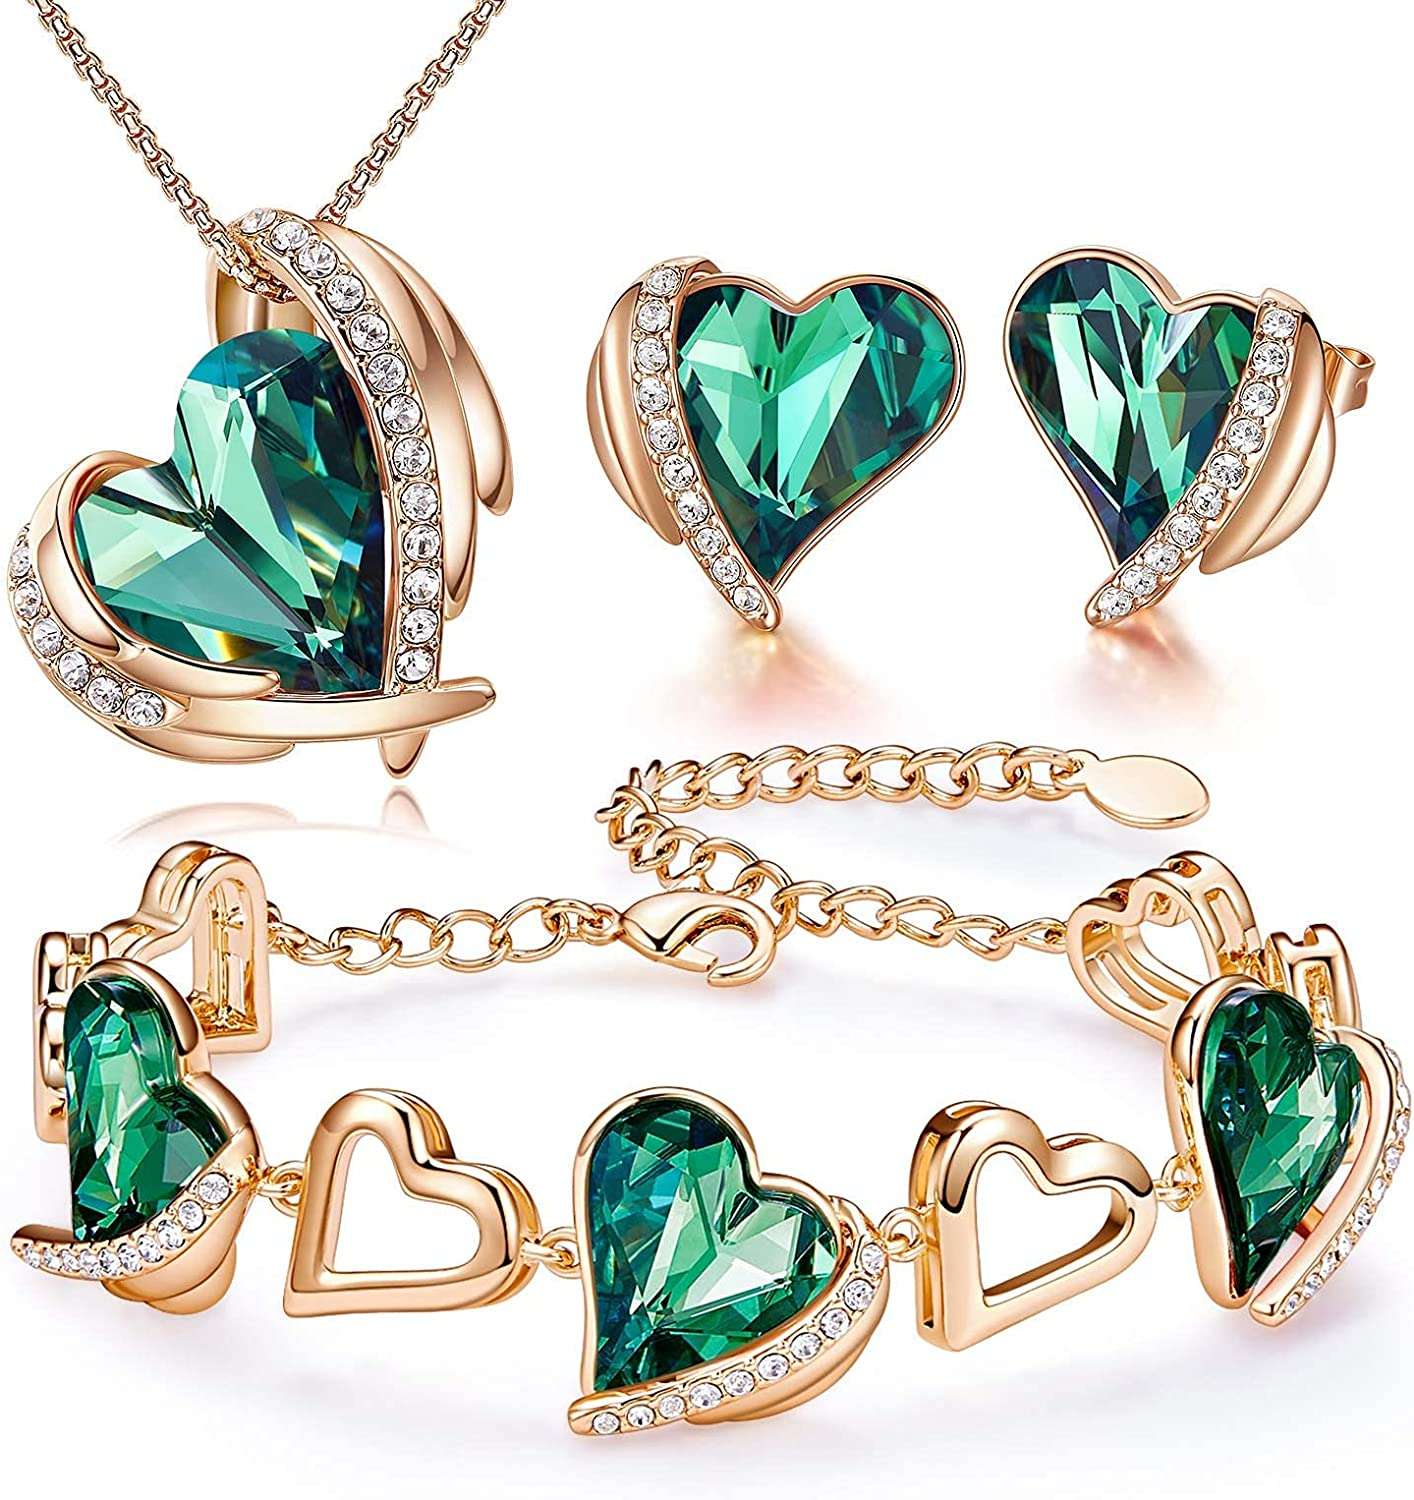 CDE Love Heart Necklace and Earrings Bracelet Rose Gold Plated Jewelry Sets for Women